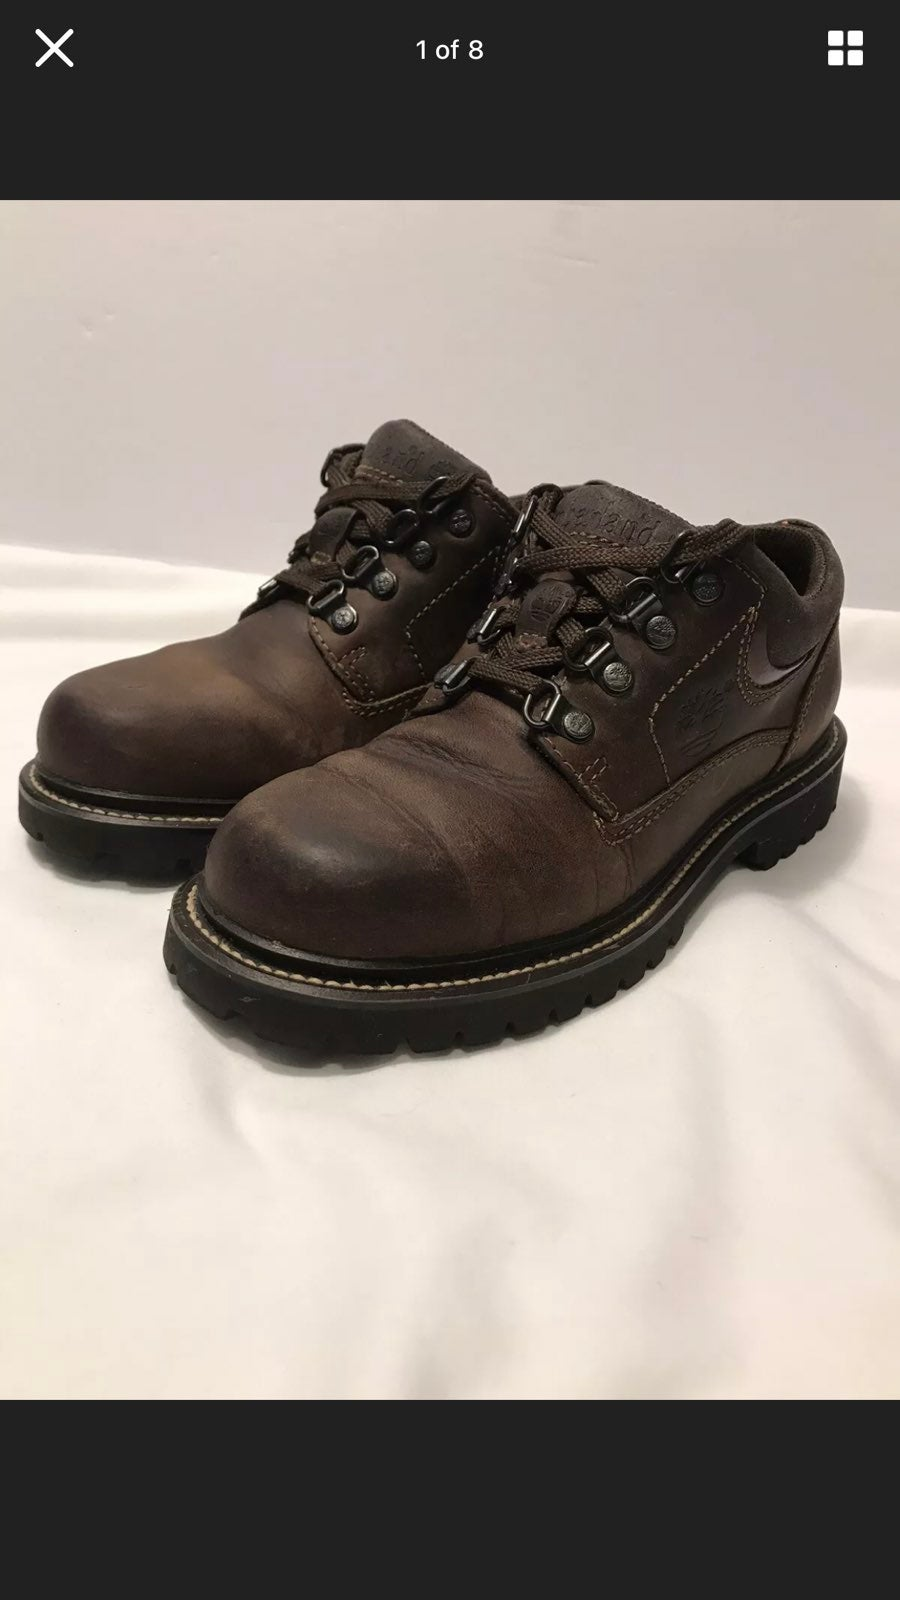 Timberland Low Cut Boots Size 7